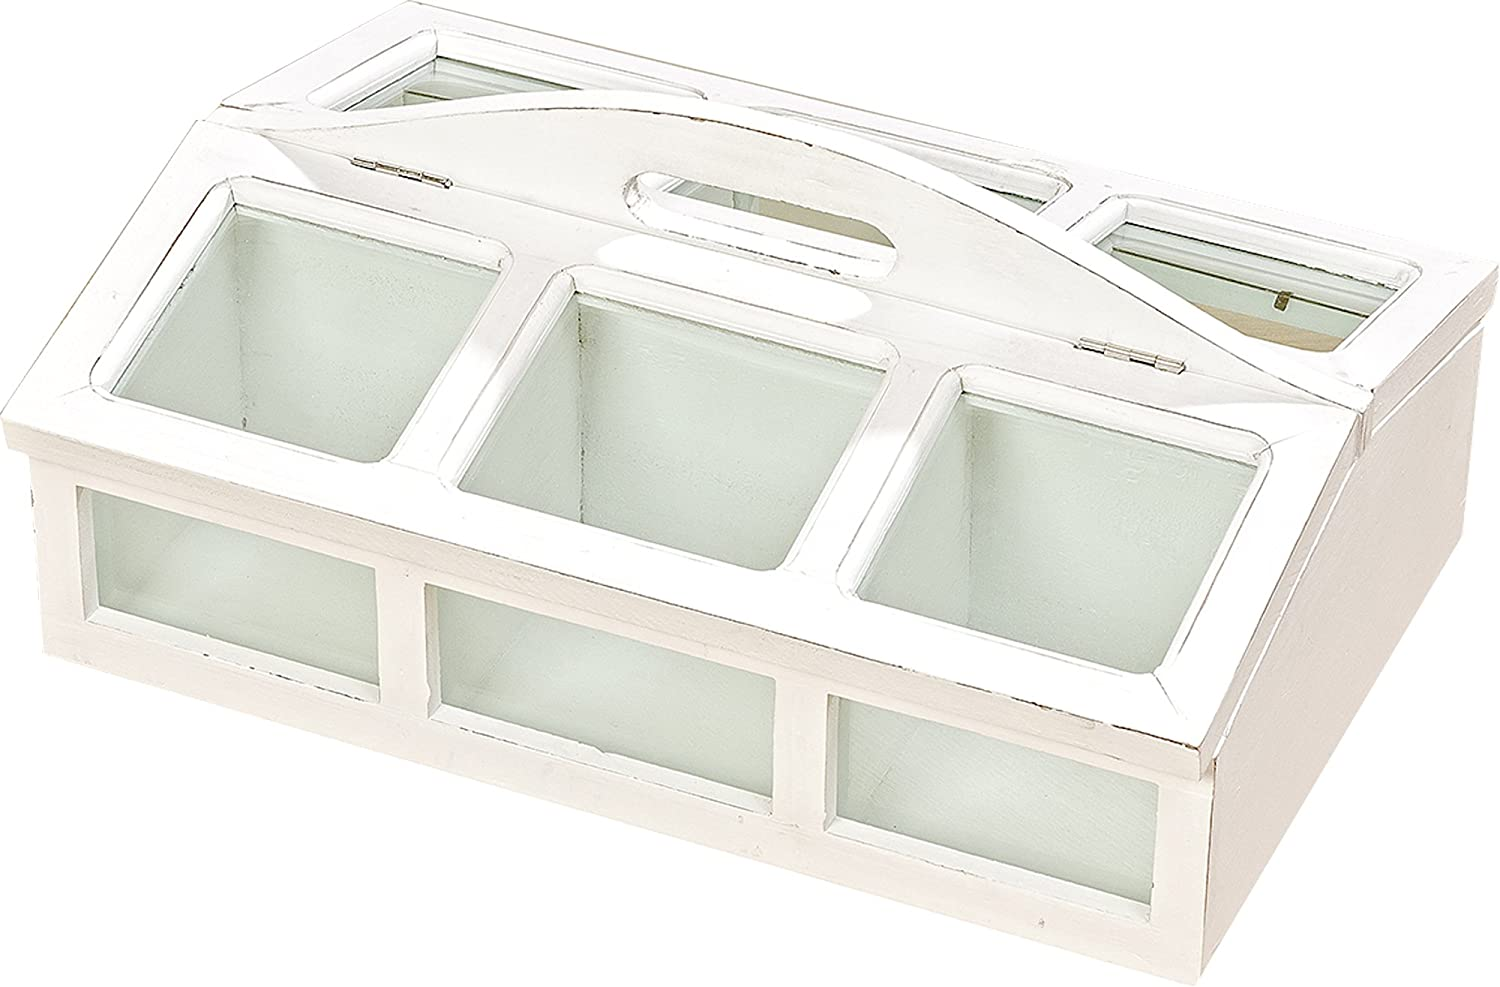 Country Cottage 6 Compartment Tea Organizer and Accessory Box, Glass Windows, Rustic White, Distressed Shabby Finish, Window Lid, Over 1 Foot Long, (16 L x 12 1 4 W x 7 1 2 H Inches) Wood